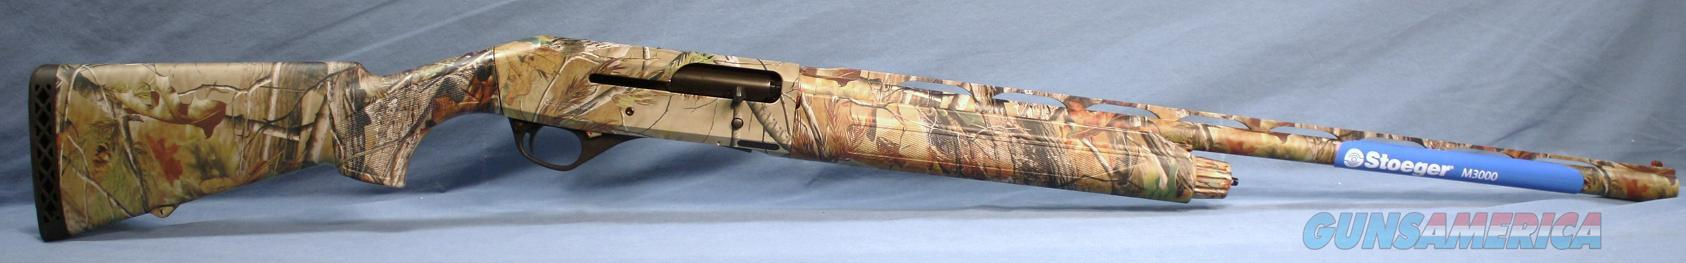 Stoeger M3000 Realtree APG Camo Semi-Automatic Shotgun 12 gauge Free Shipping and No Credit Card Fees!    Guns > Shotguns > Stoeger Shotguns